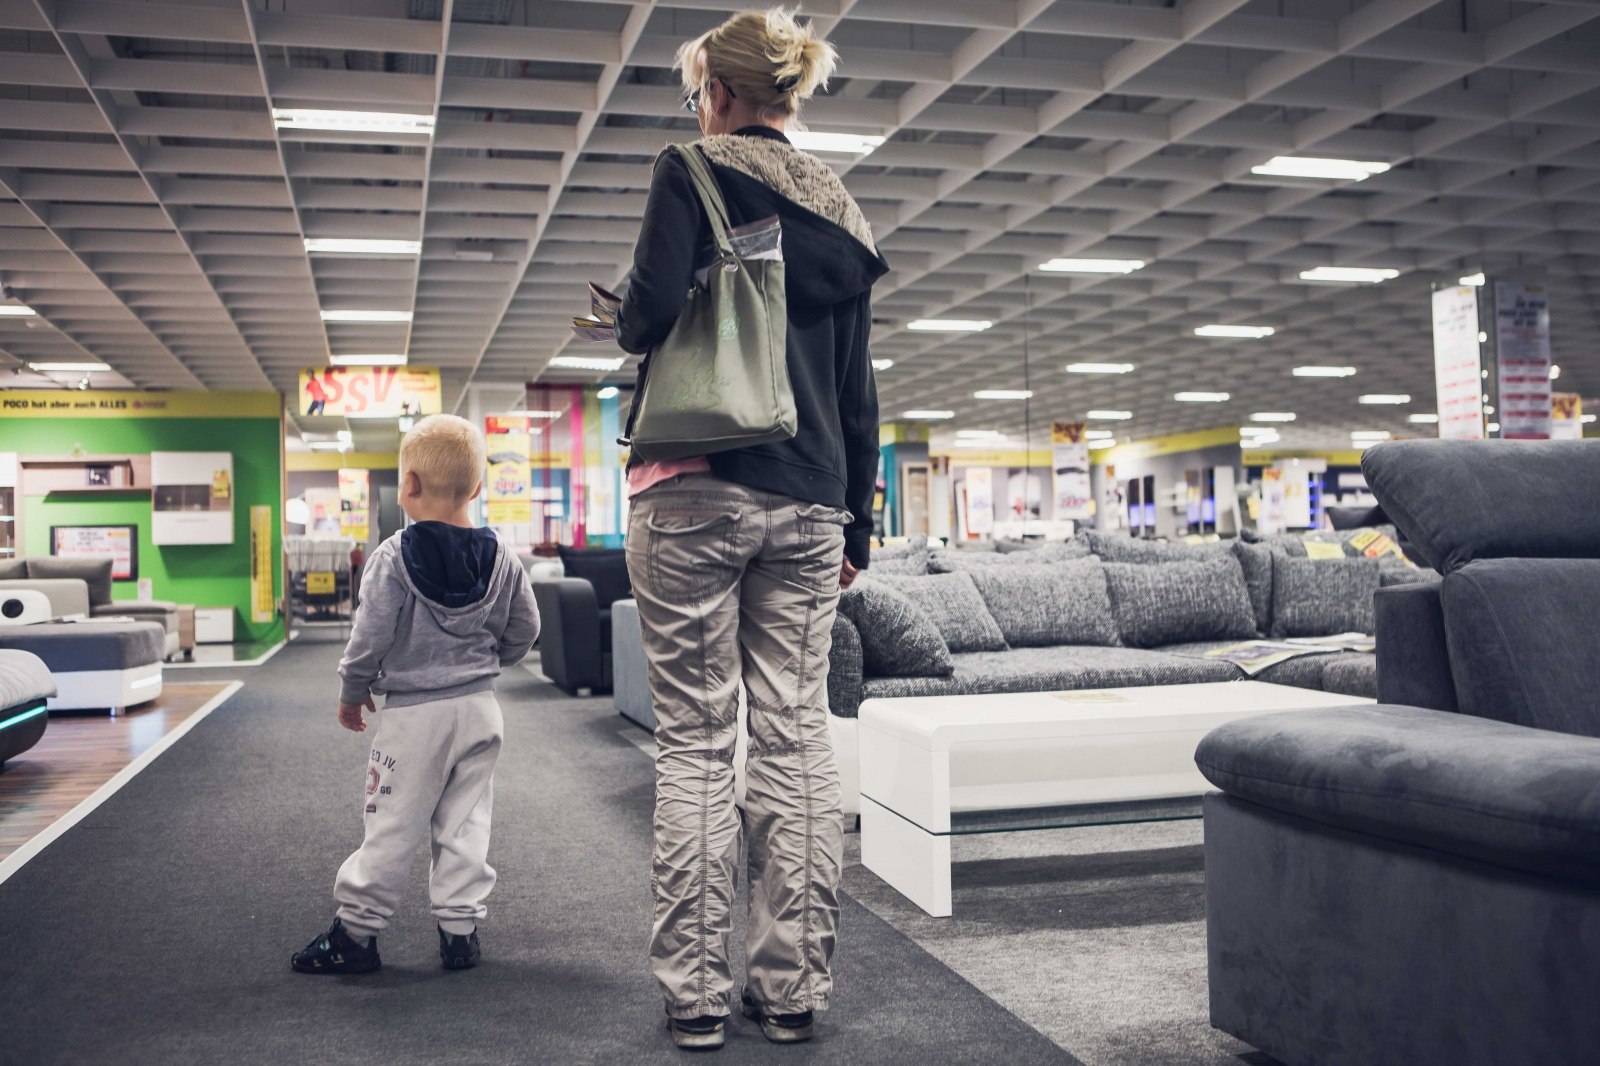 Claudia B, 37, and her son Oskar, 3, go shopping for furniture for their new apartment. After only three months in the safe house and several rejections from landlords that stigmatize women with her social background, Claudia was lucky to find a new home for her family.